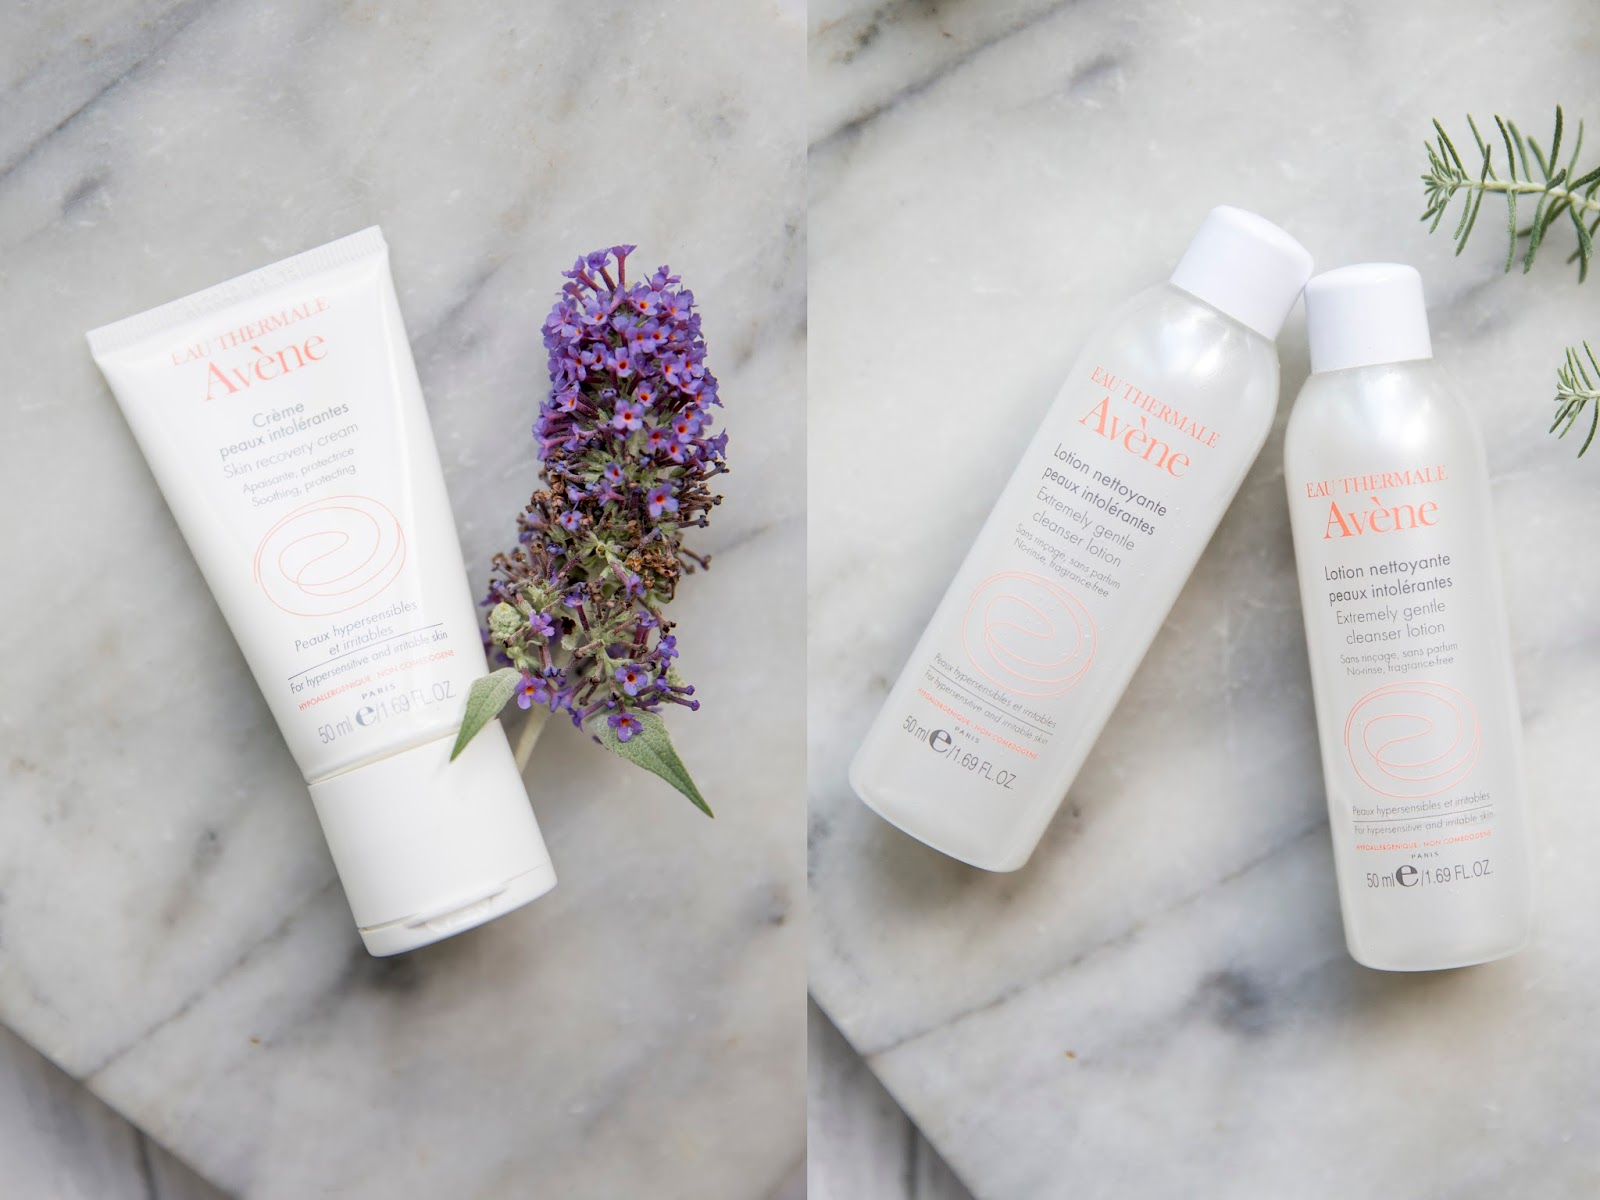 eau-thermal-avene-sensitive-skin-kit-review